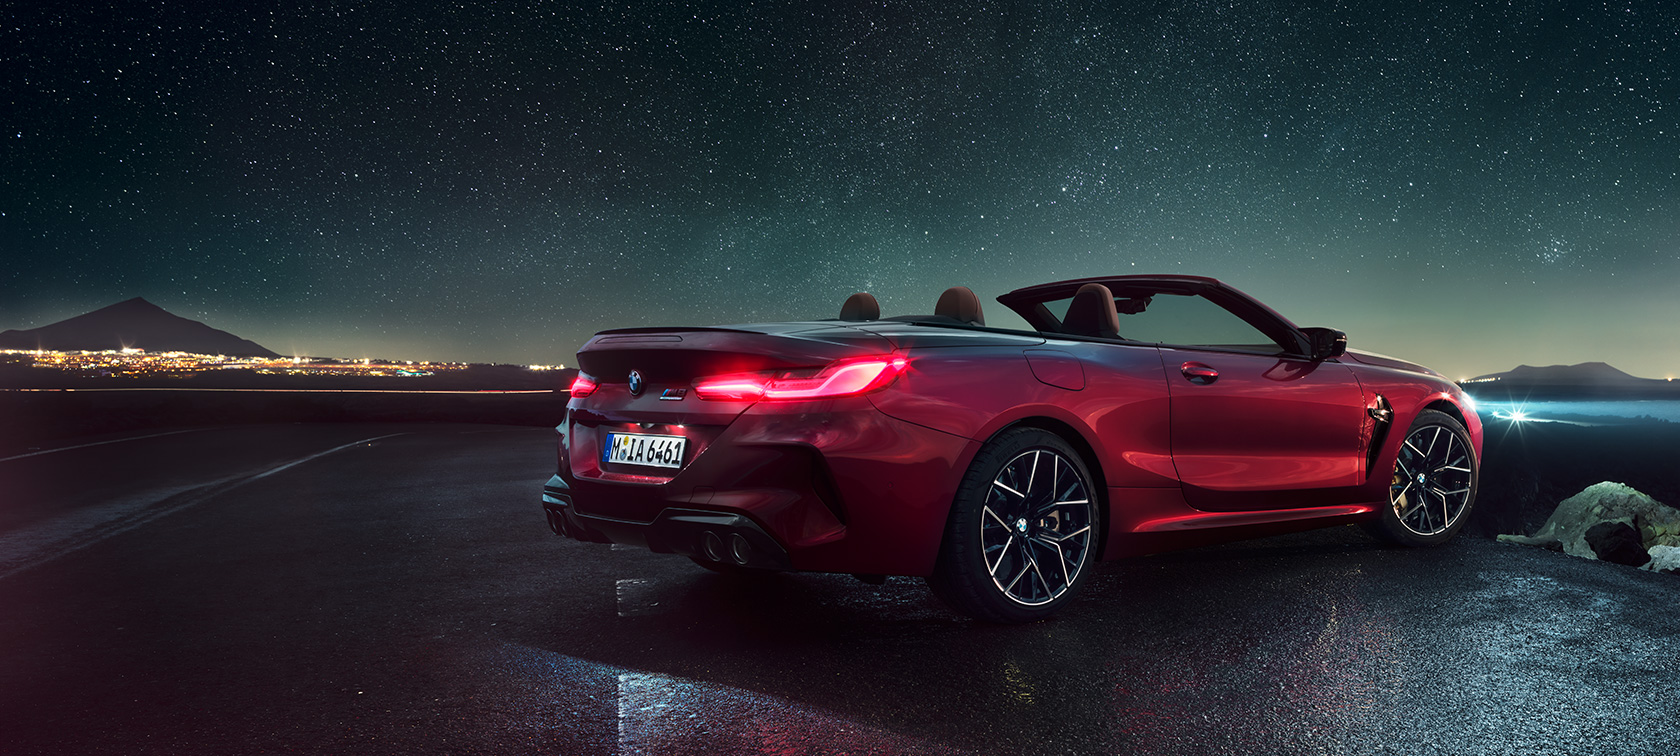 BMW M8 Competition Convertible in Motegi Red metallic with open softtop, three-quarter rear view, standing under starry sky.